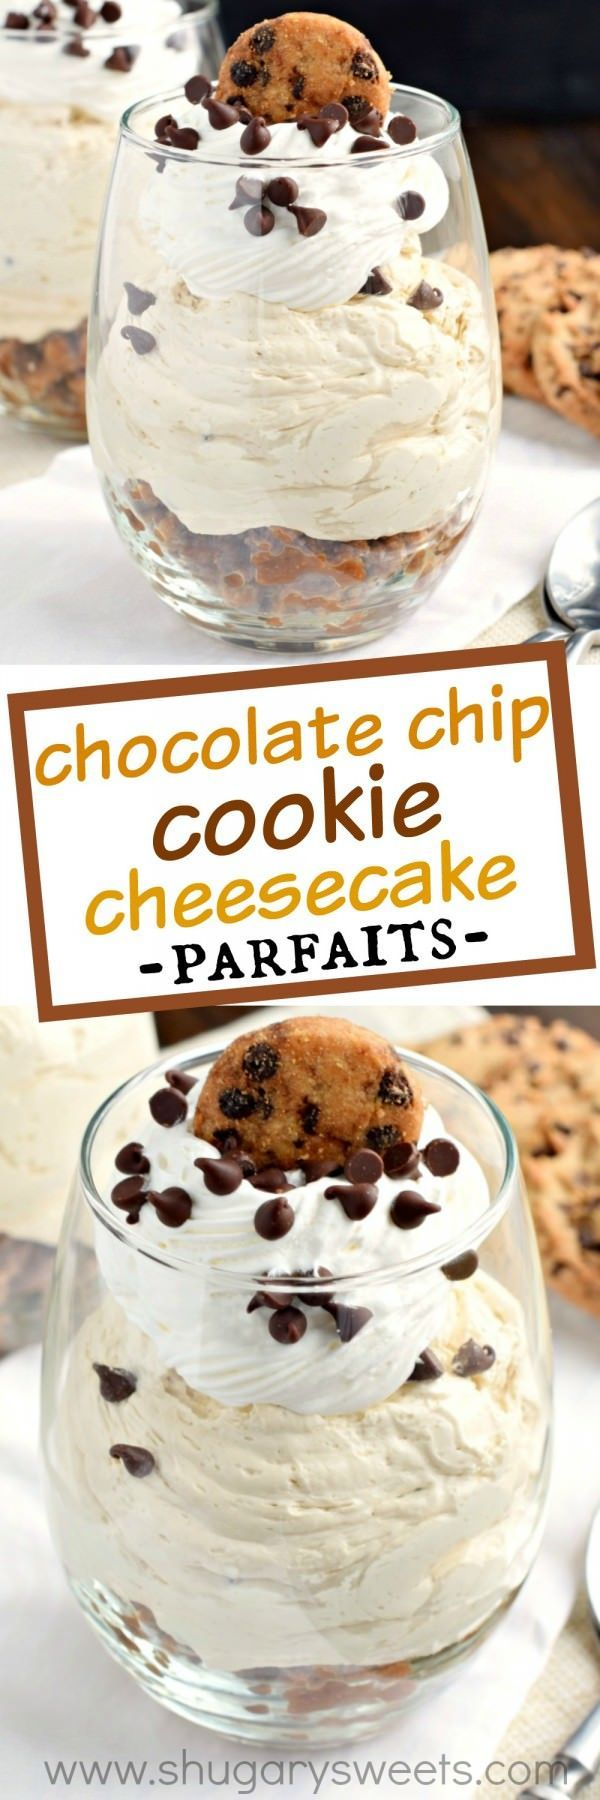 NO BAKE Chocolate Chip Cookie Cheesecake Parfait Recipe